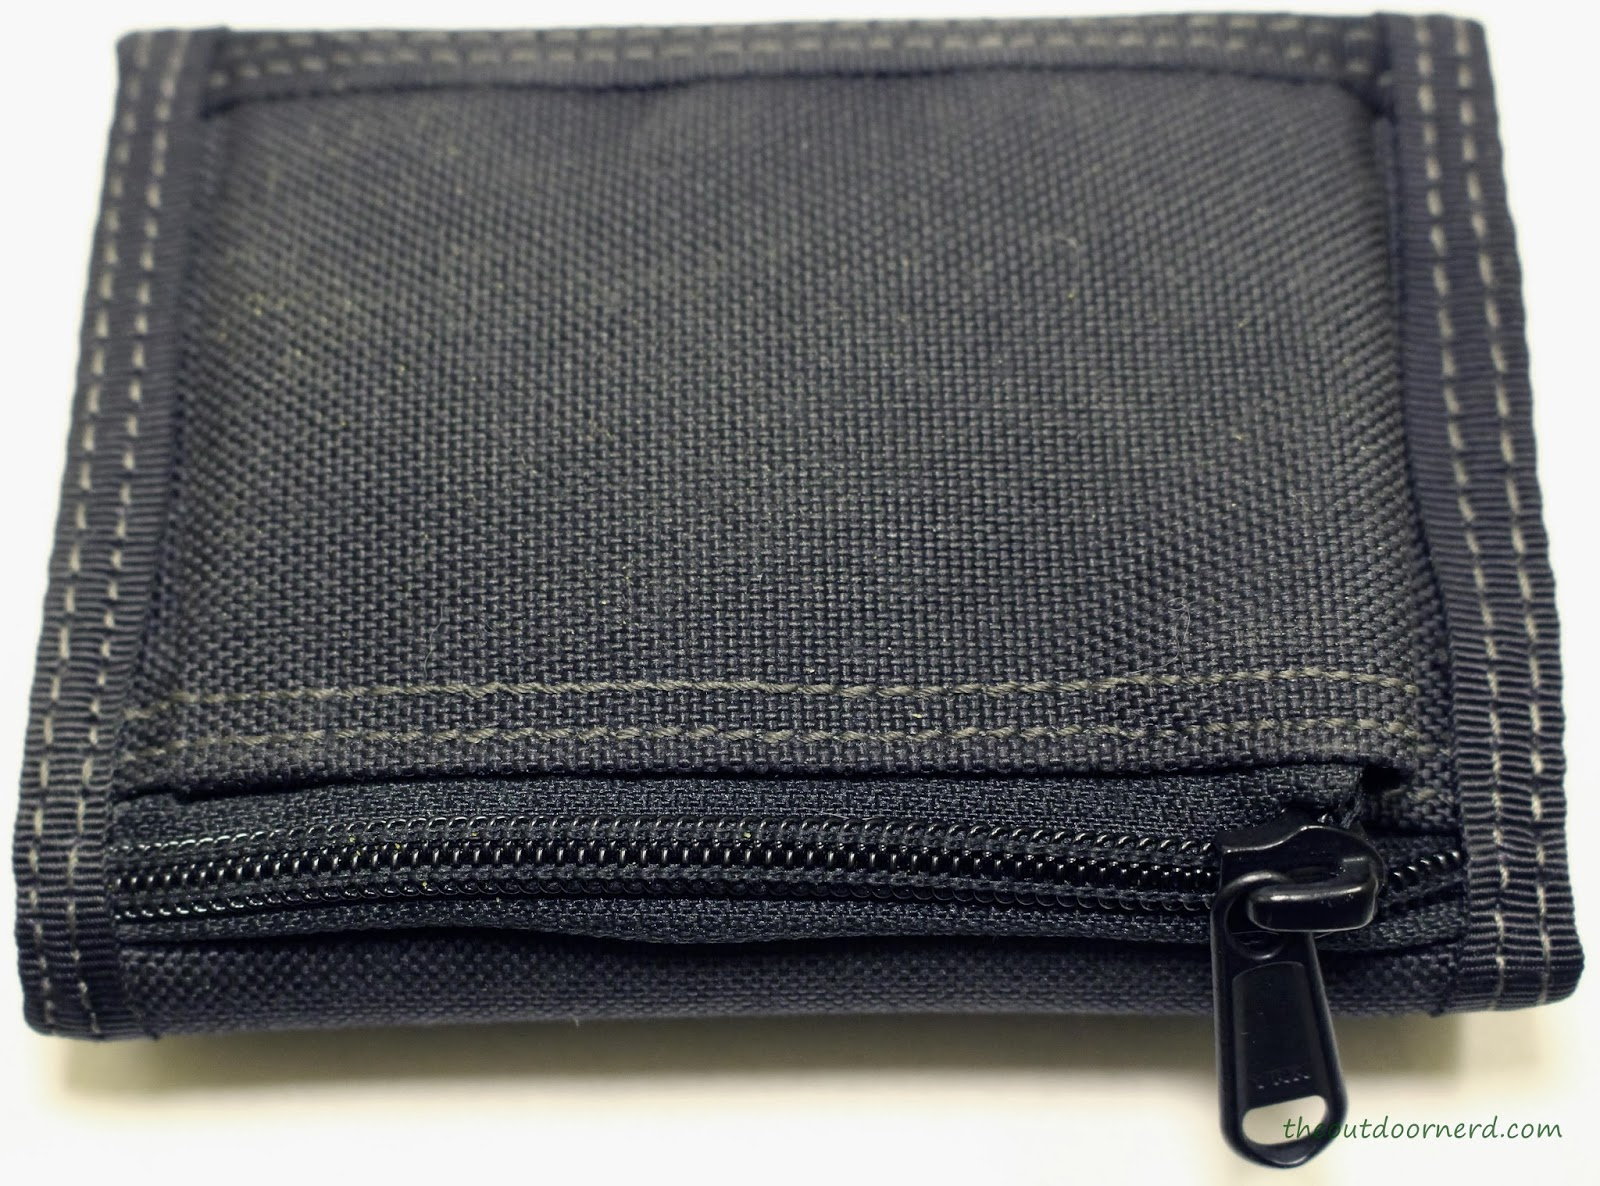 Maxpedition C.M.C Wallet - Bottom View